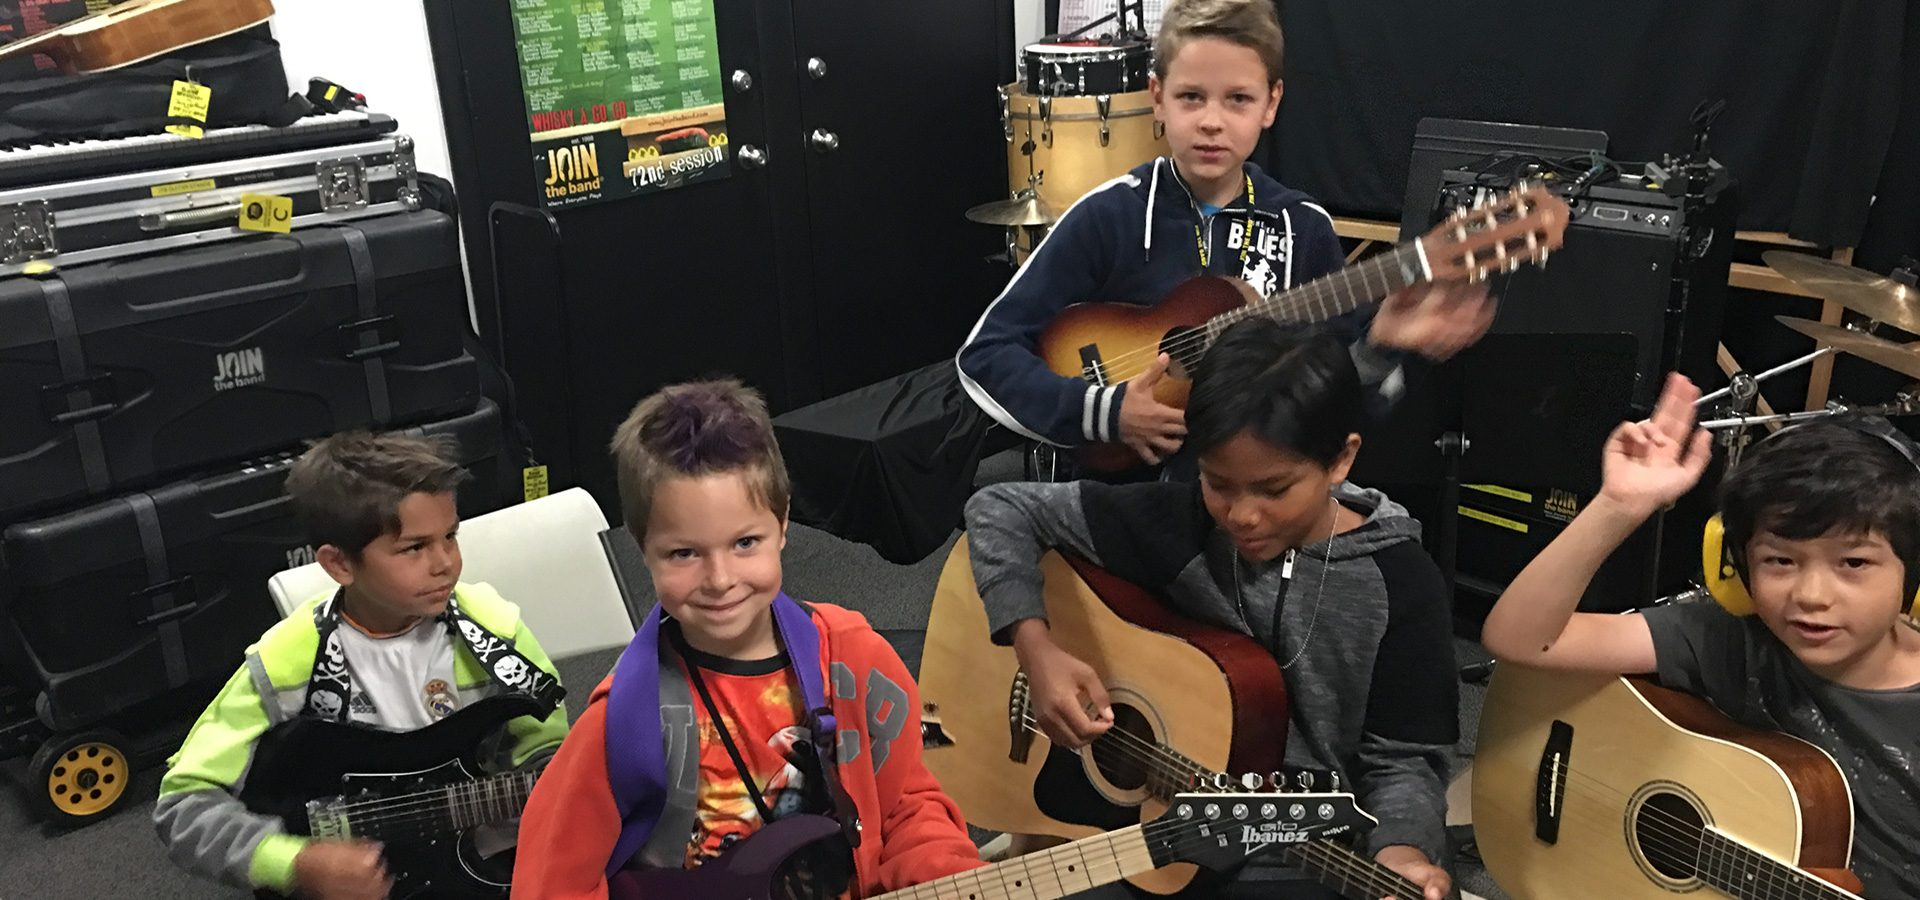 Intro to Music Camp - Kids Guitar Lessons - Sherman Oaks, Los Angeles - Join The Band